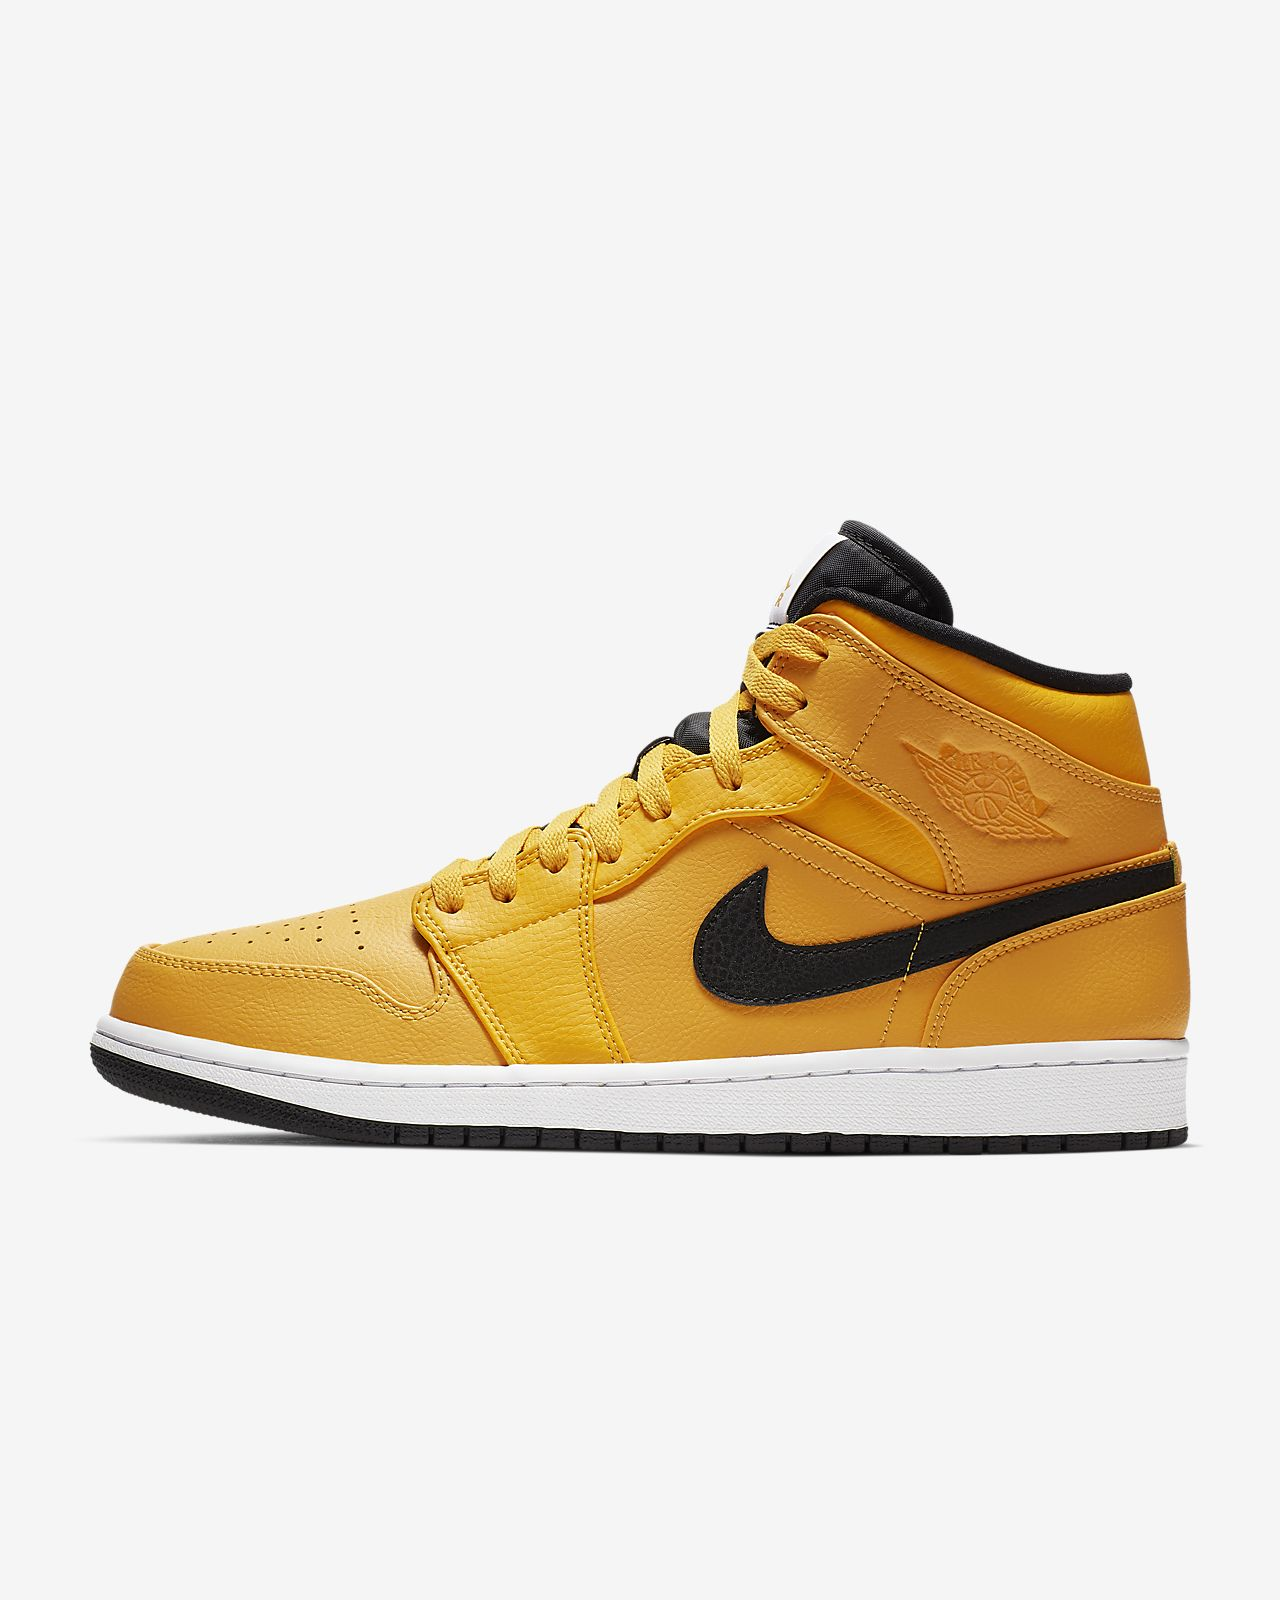 779b7e490 Air Jordan 1 Mid Men s Shoe. Nike.com